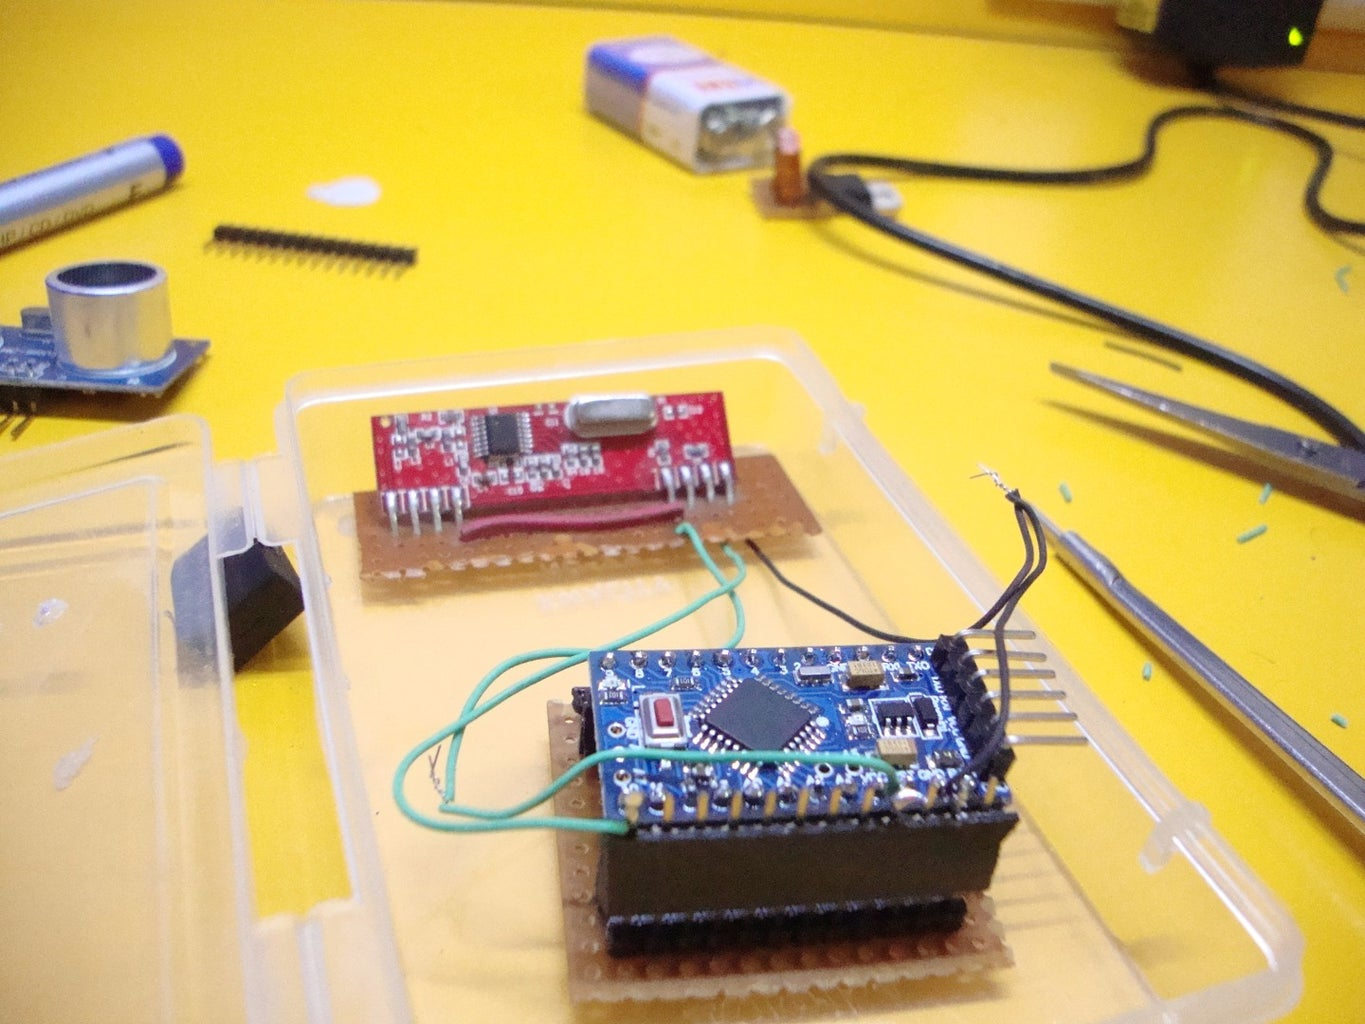 Making the Transmitter: Connect the RF Receiver Module